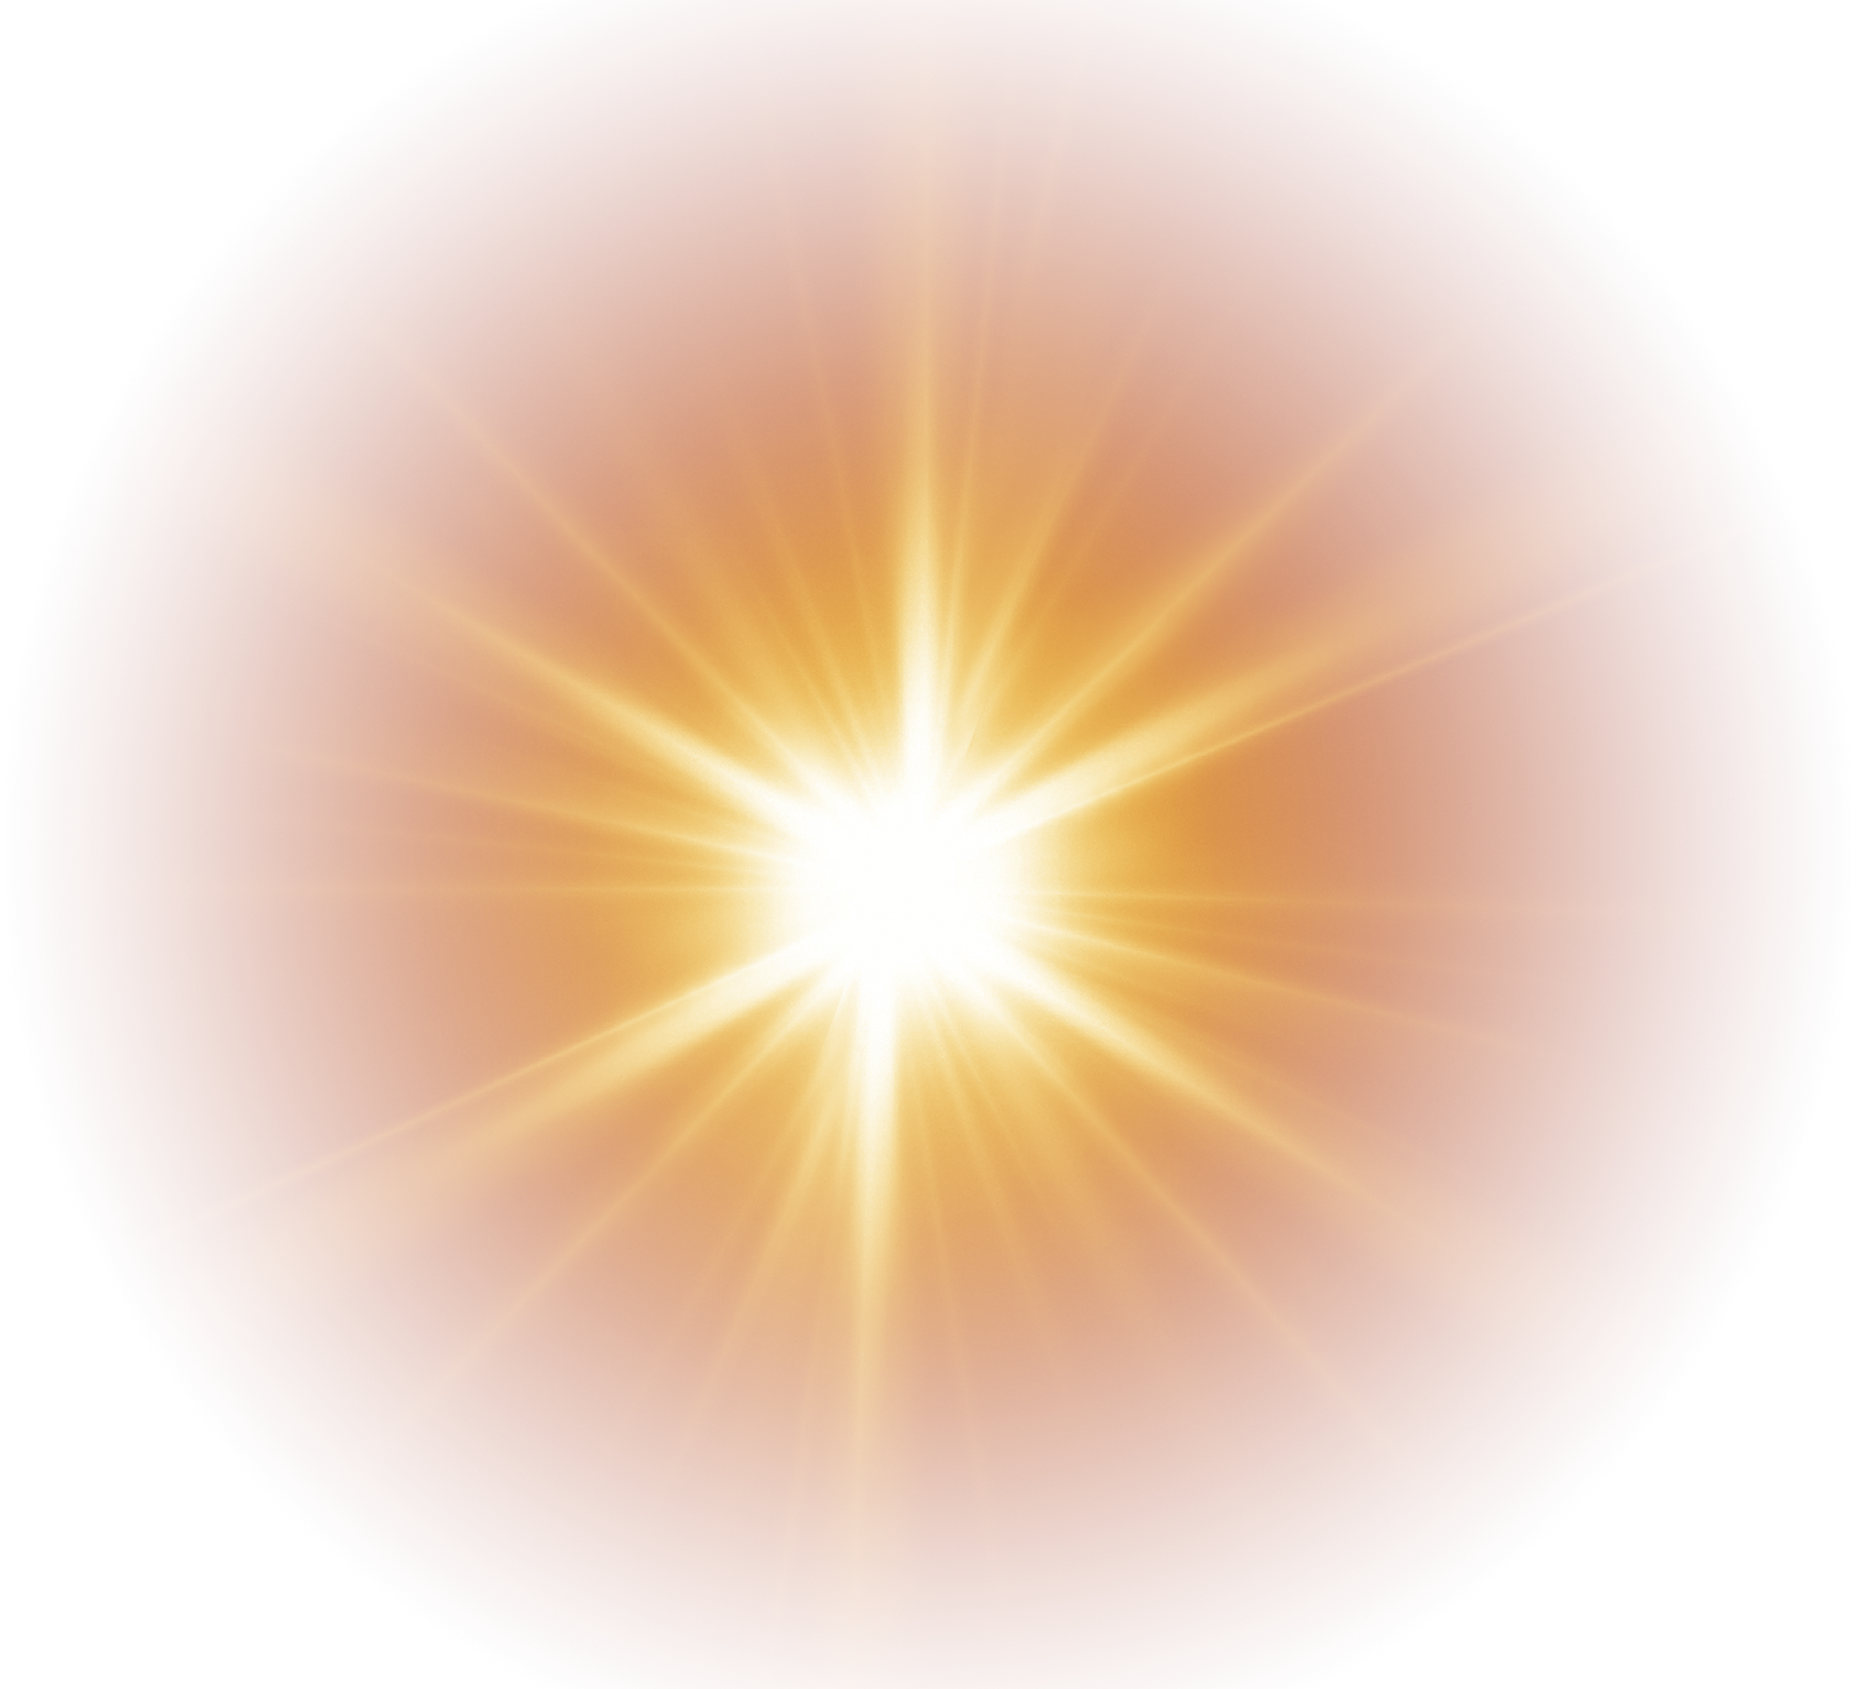 Sky Sunlight Free Download Image PNG Image